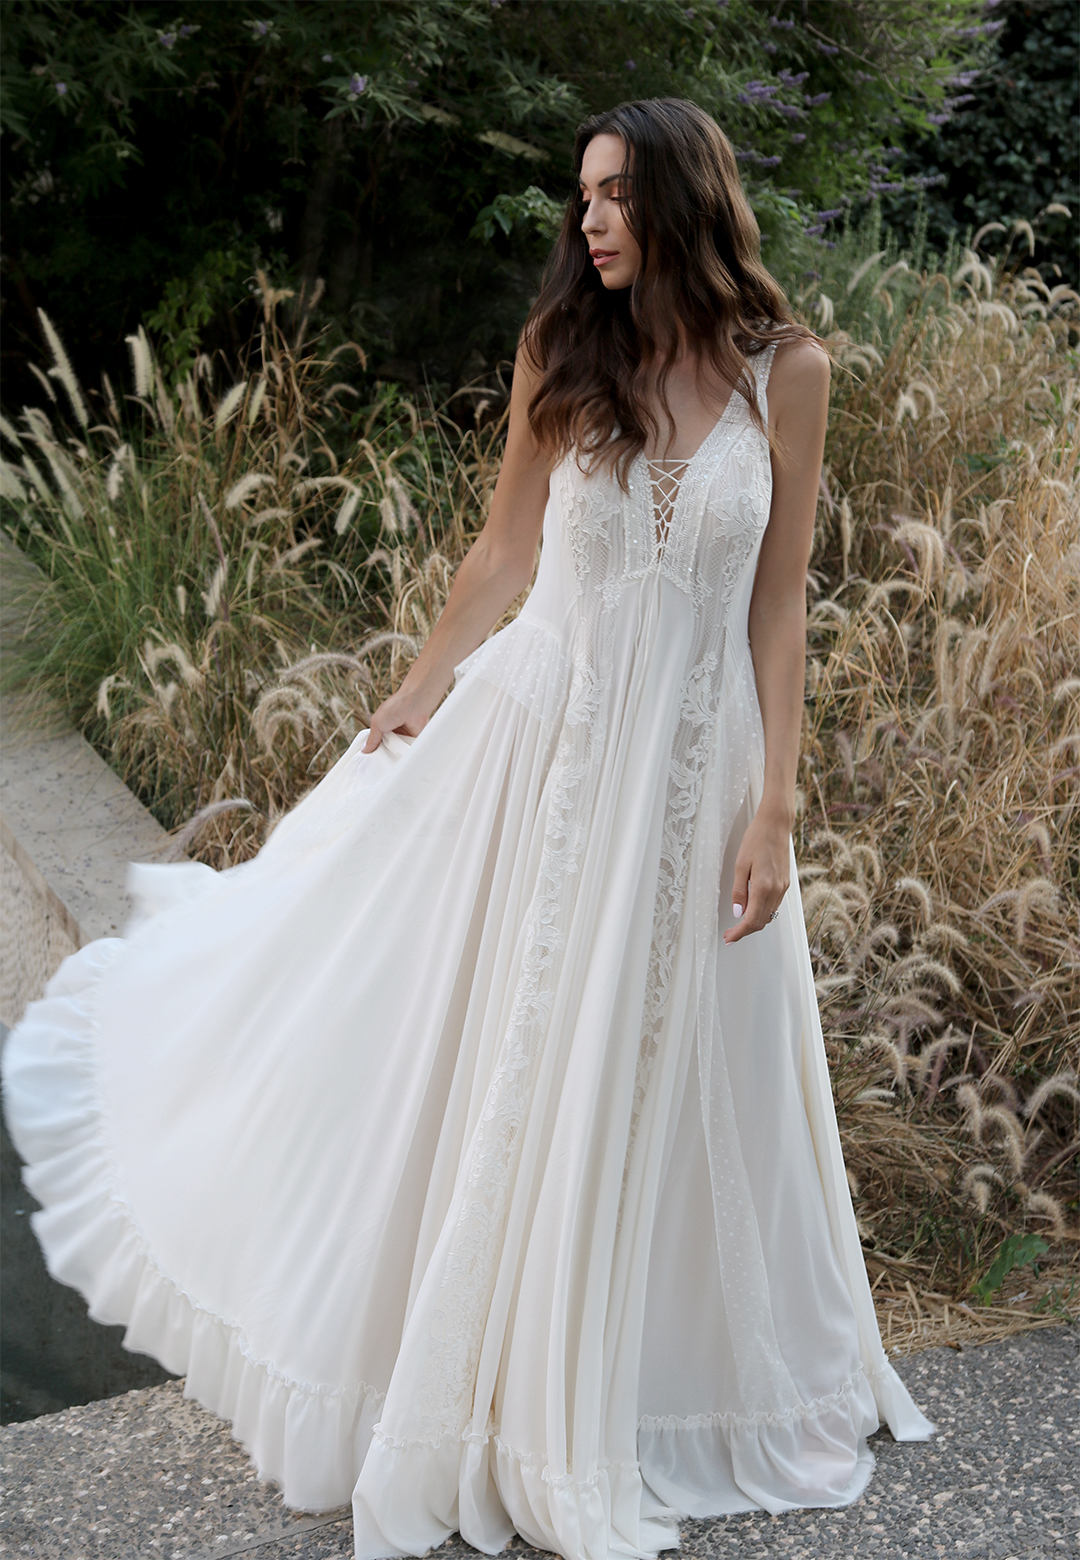 114-The MUSK Collection ELISH Bridal - 2